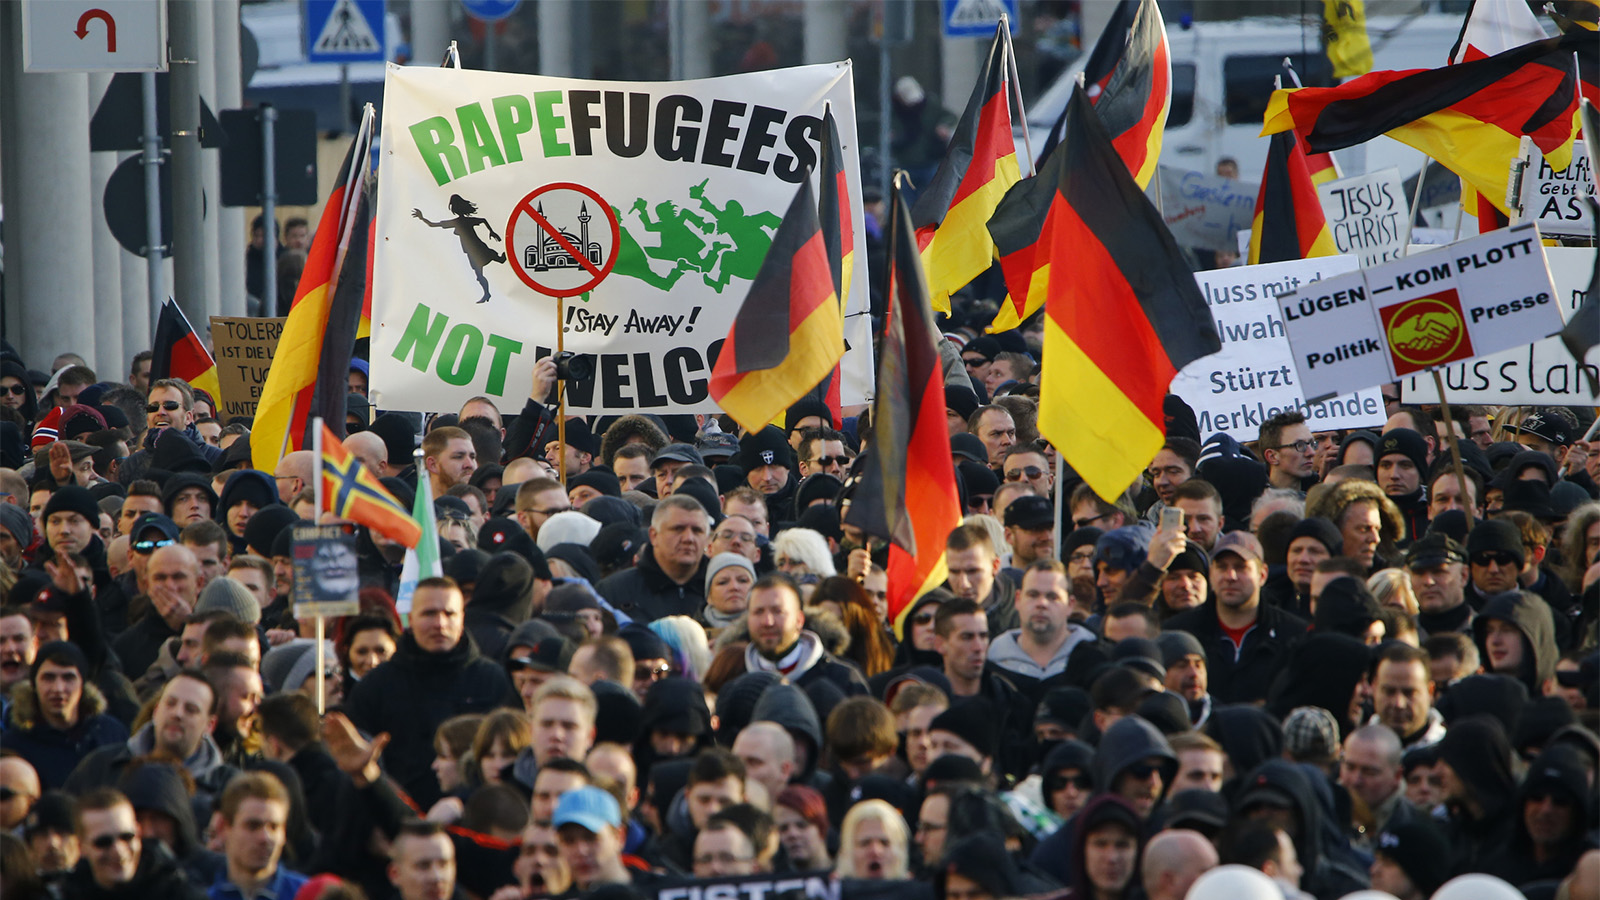 Supporters of anti-immigration right-wing movement PEGIDA (Patriotic Europeans Against the Islamisation of the West) take part in in demonstration rally, in reaction to mass assaults on women on New Year's Eve, in Cologne, Germany, January 9, 2016.  Wolfgang Rattay / Reuters